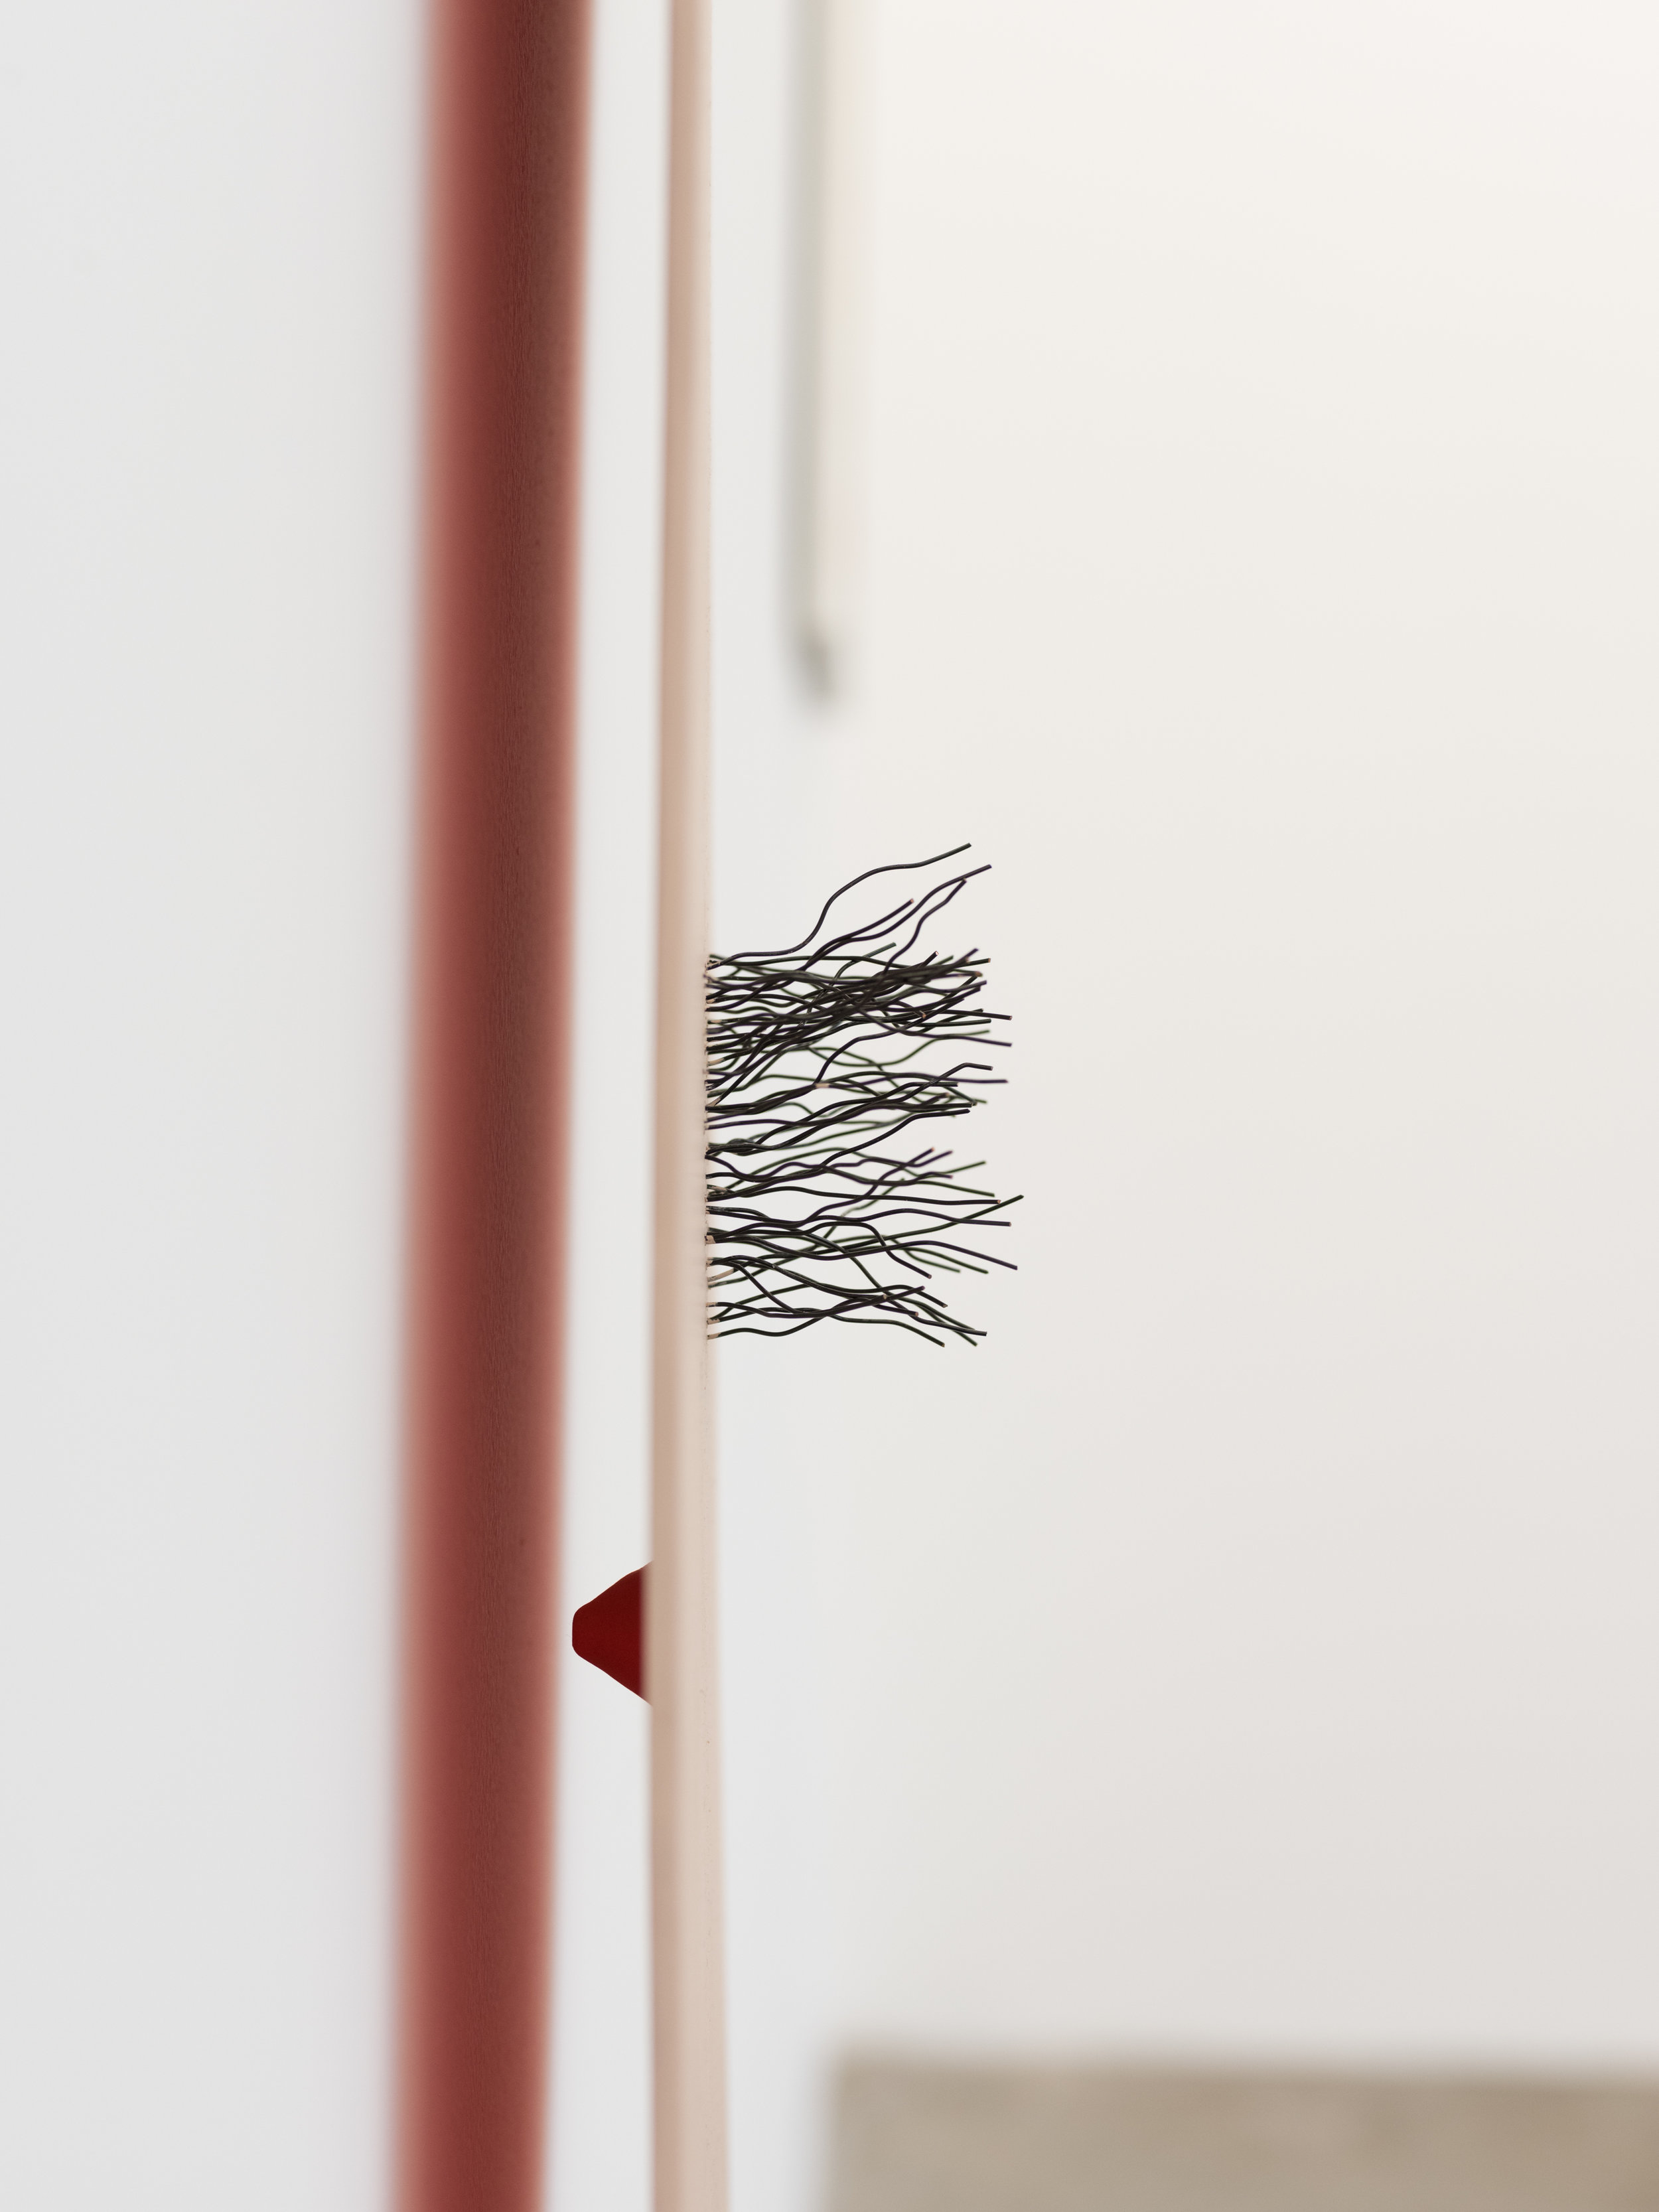 Stephanie Rohlfs   Long Long (detail) , 2018  Wood, paint, wire, epoxy, clay  56 x 13 x 7 in